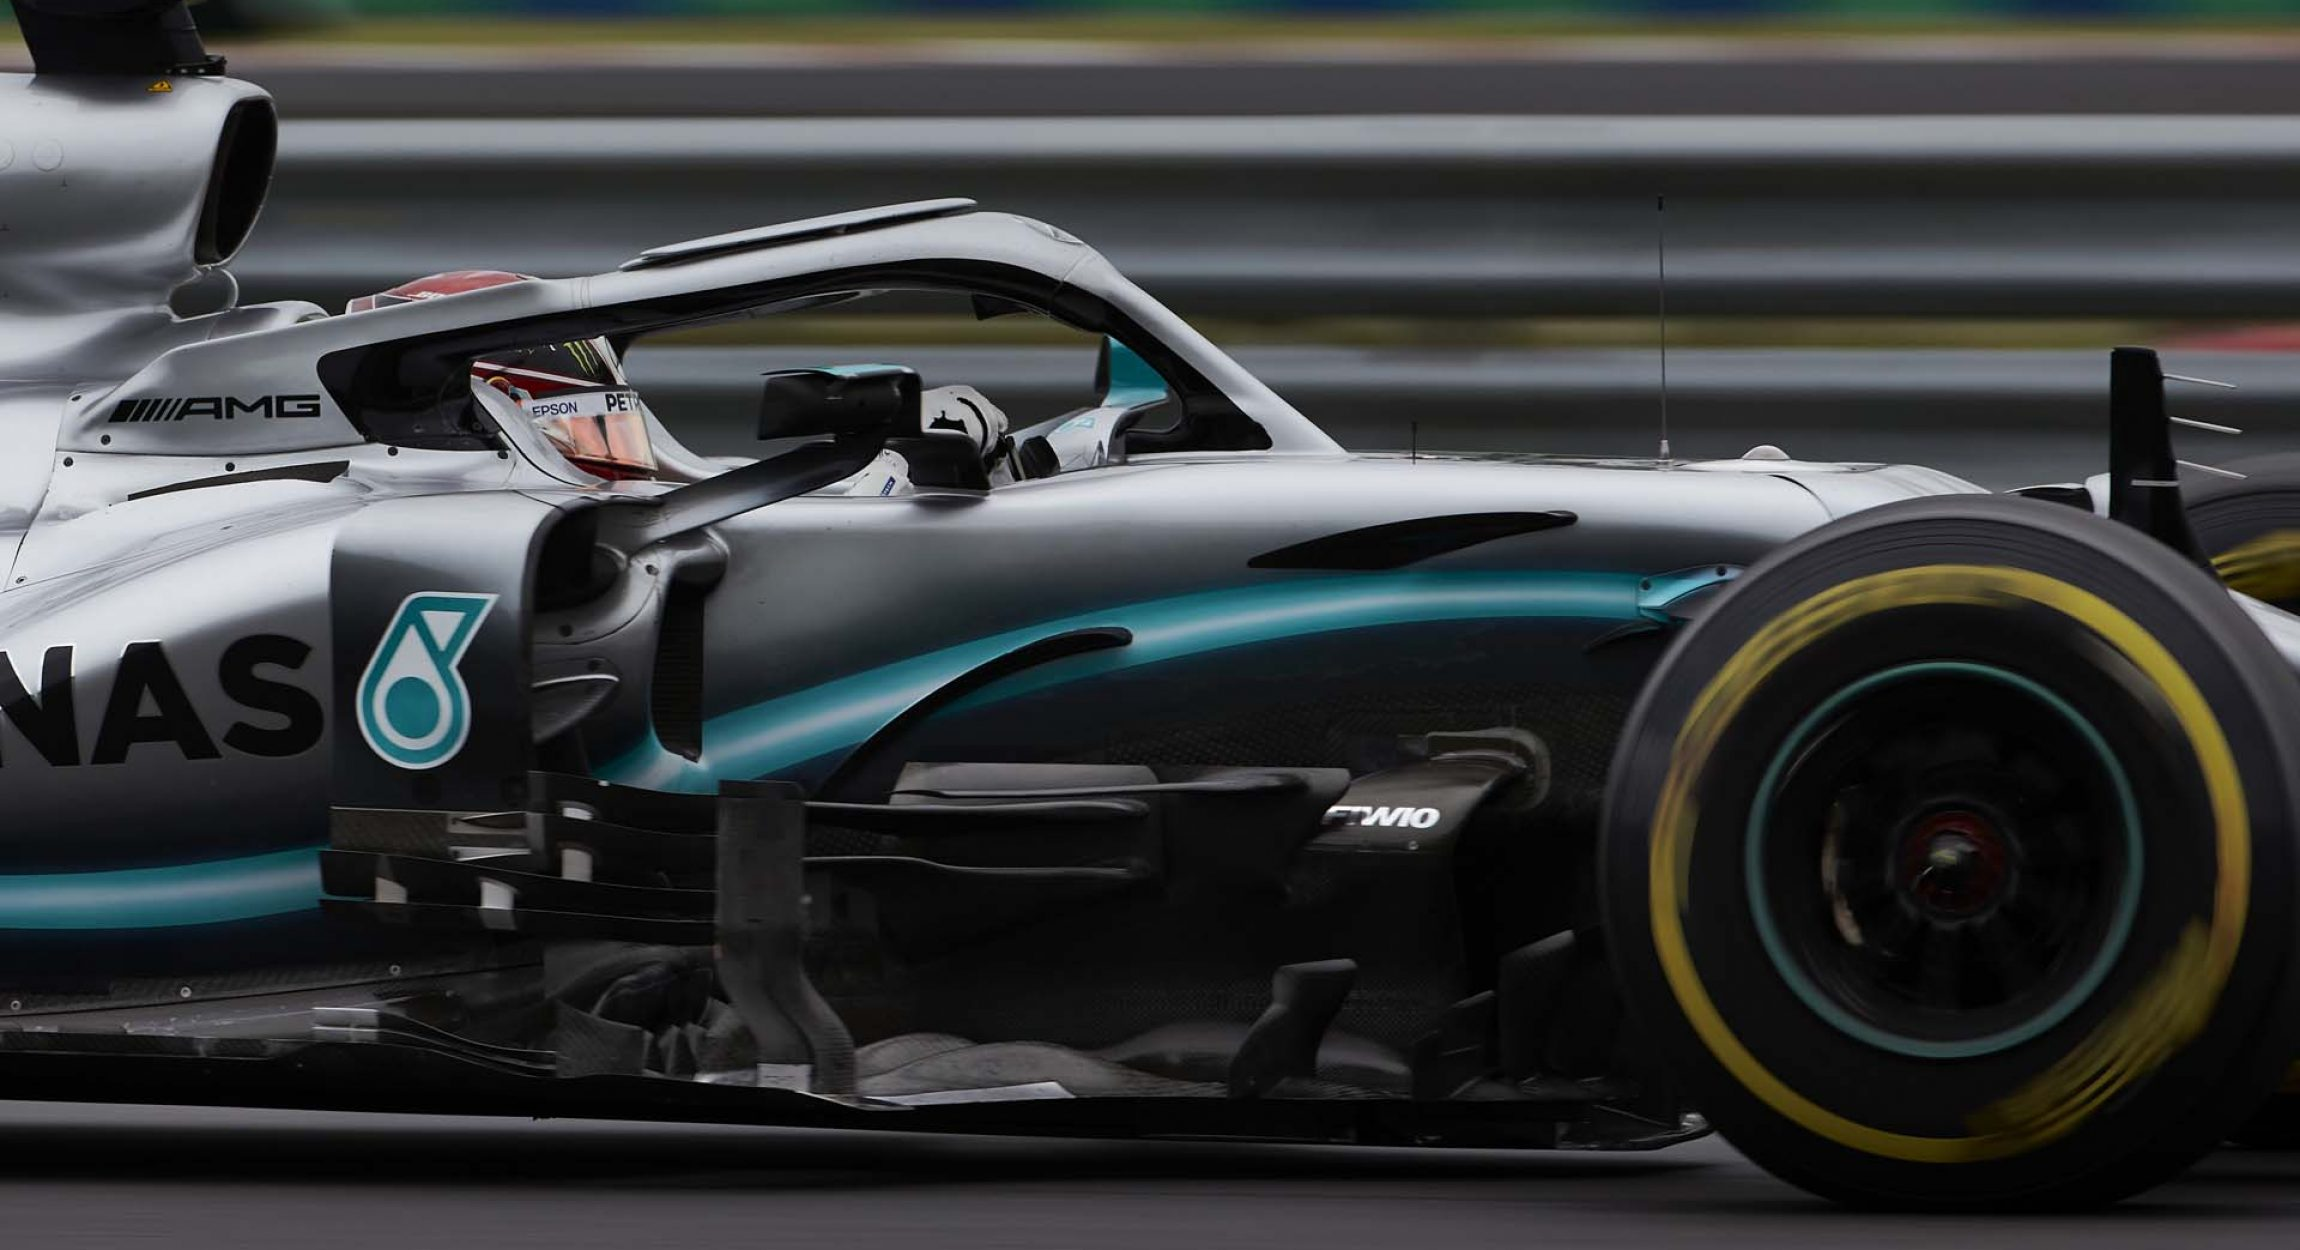 2019 Hungarian Grand Prix, Friday - Steve Etherington Lewis Hamilton Mercedes